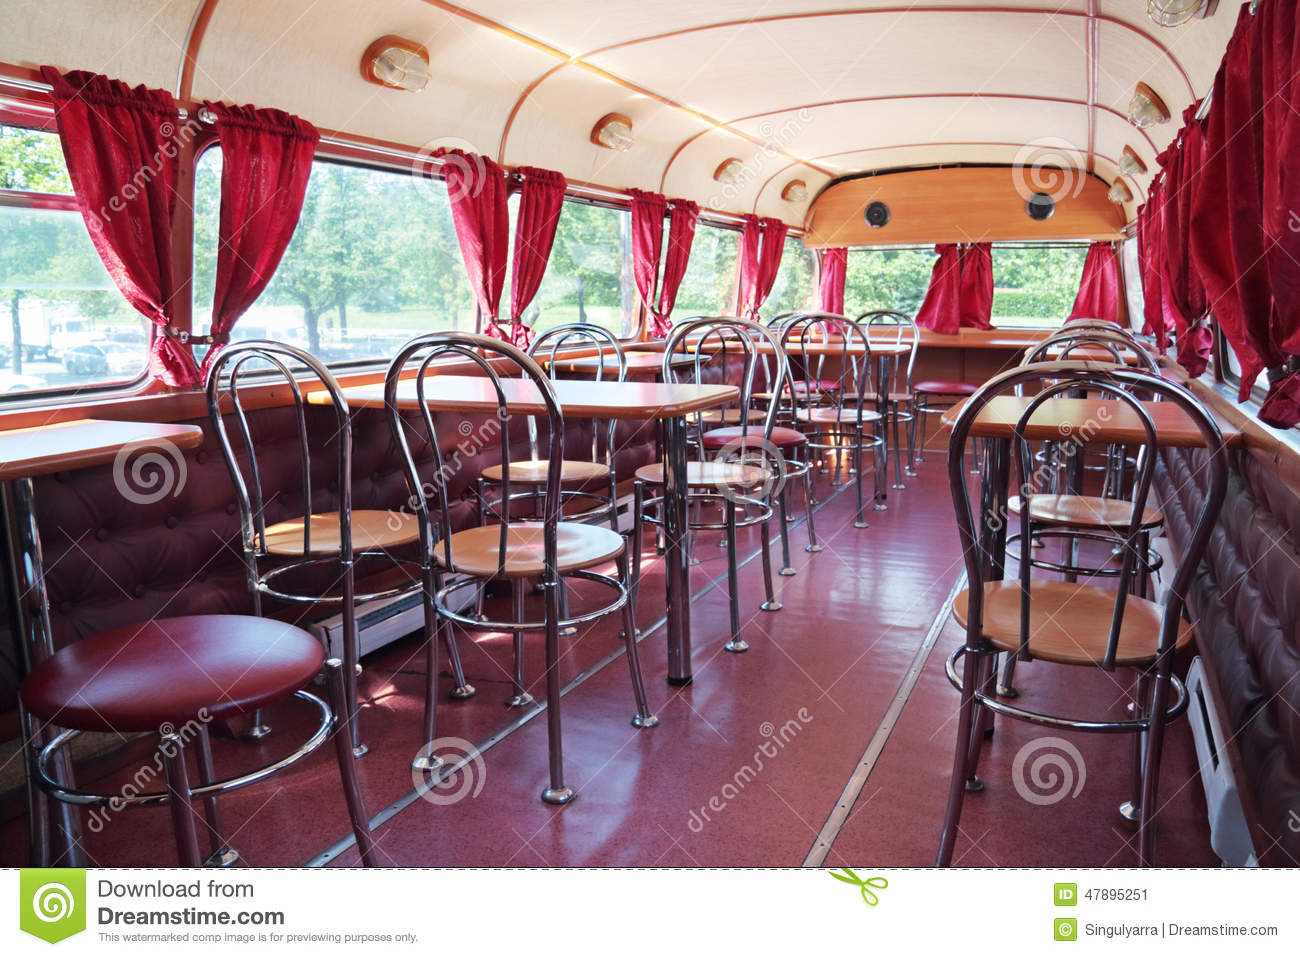 old metal chairs purple velvet chair and ottoman perm, russia - jun 11, 2013: tables in double-decker bus cafe editorial photo image: 47895251